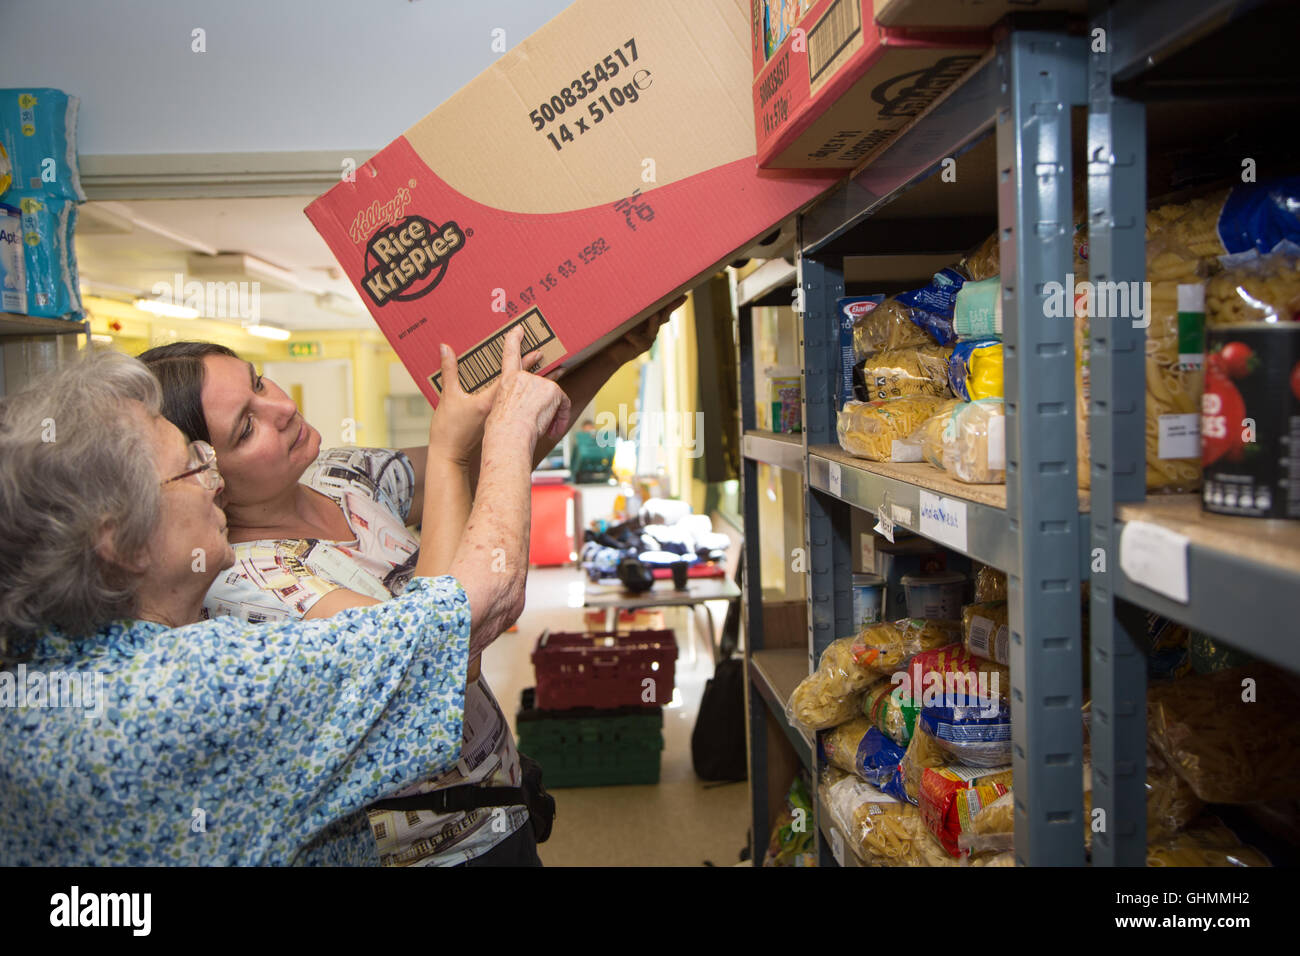 Volunteers stock shelves at North Paddington foodbank, and check sell-by dates - Stock Image